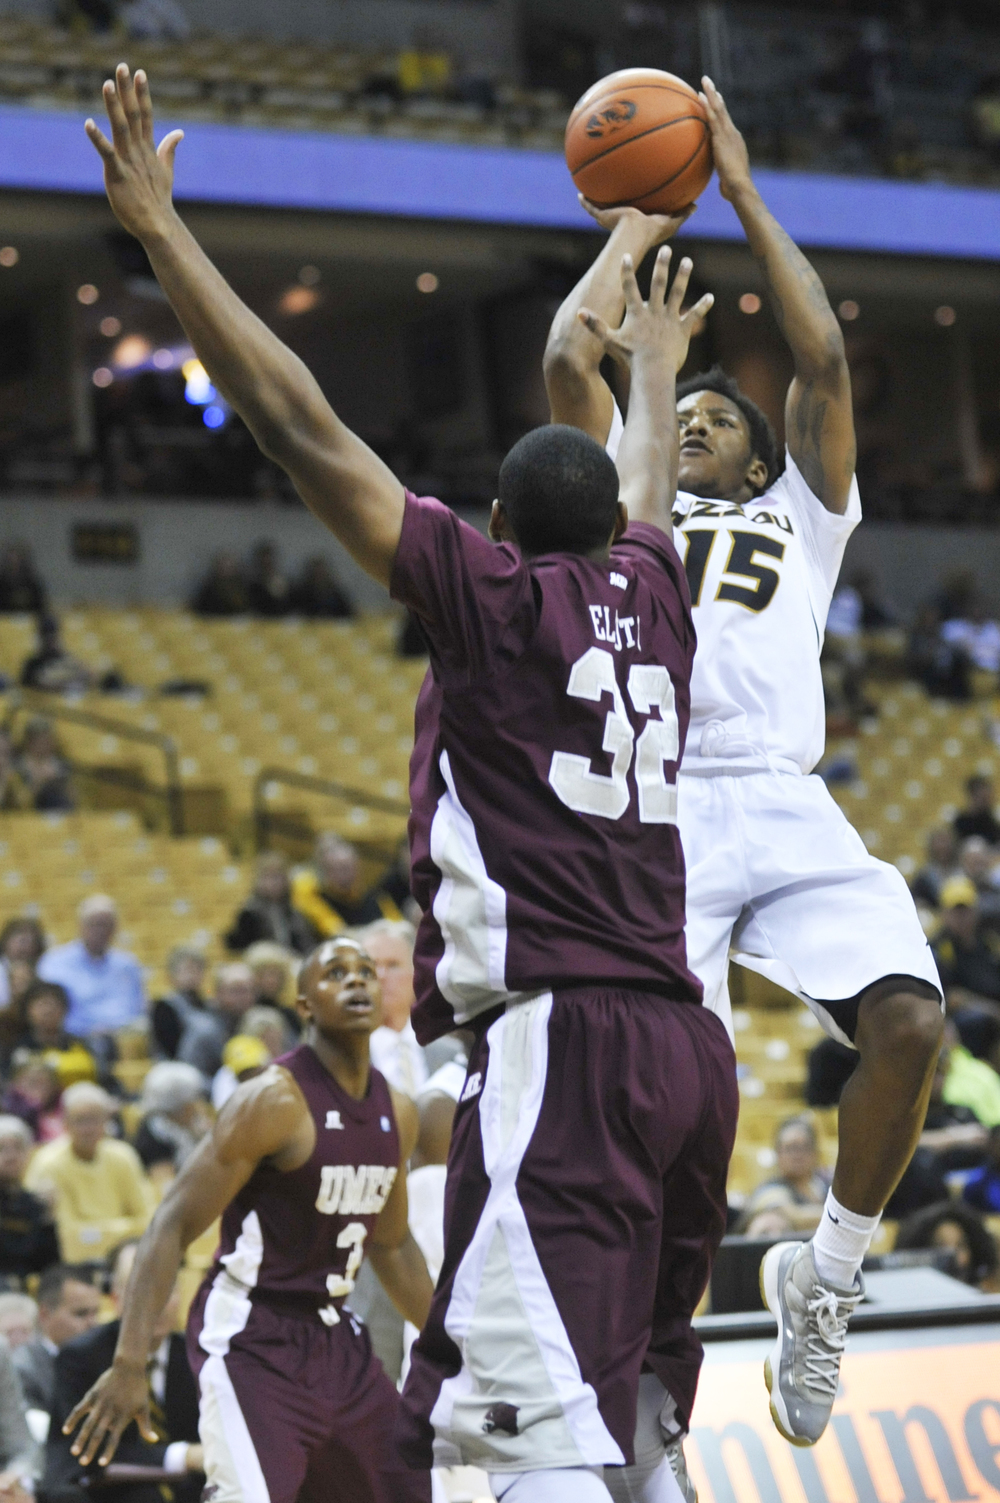 Missouri's Wes Clark shoots the ball past Maryland-Eastern Shore's Dominique Elliott on Sunday, November 15, 2015 at Mizzou Arena. Missouri won 73-55.